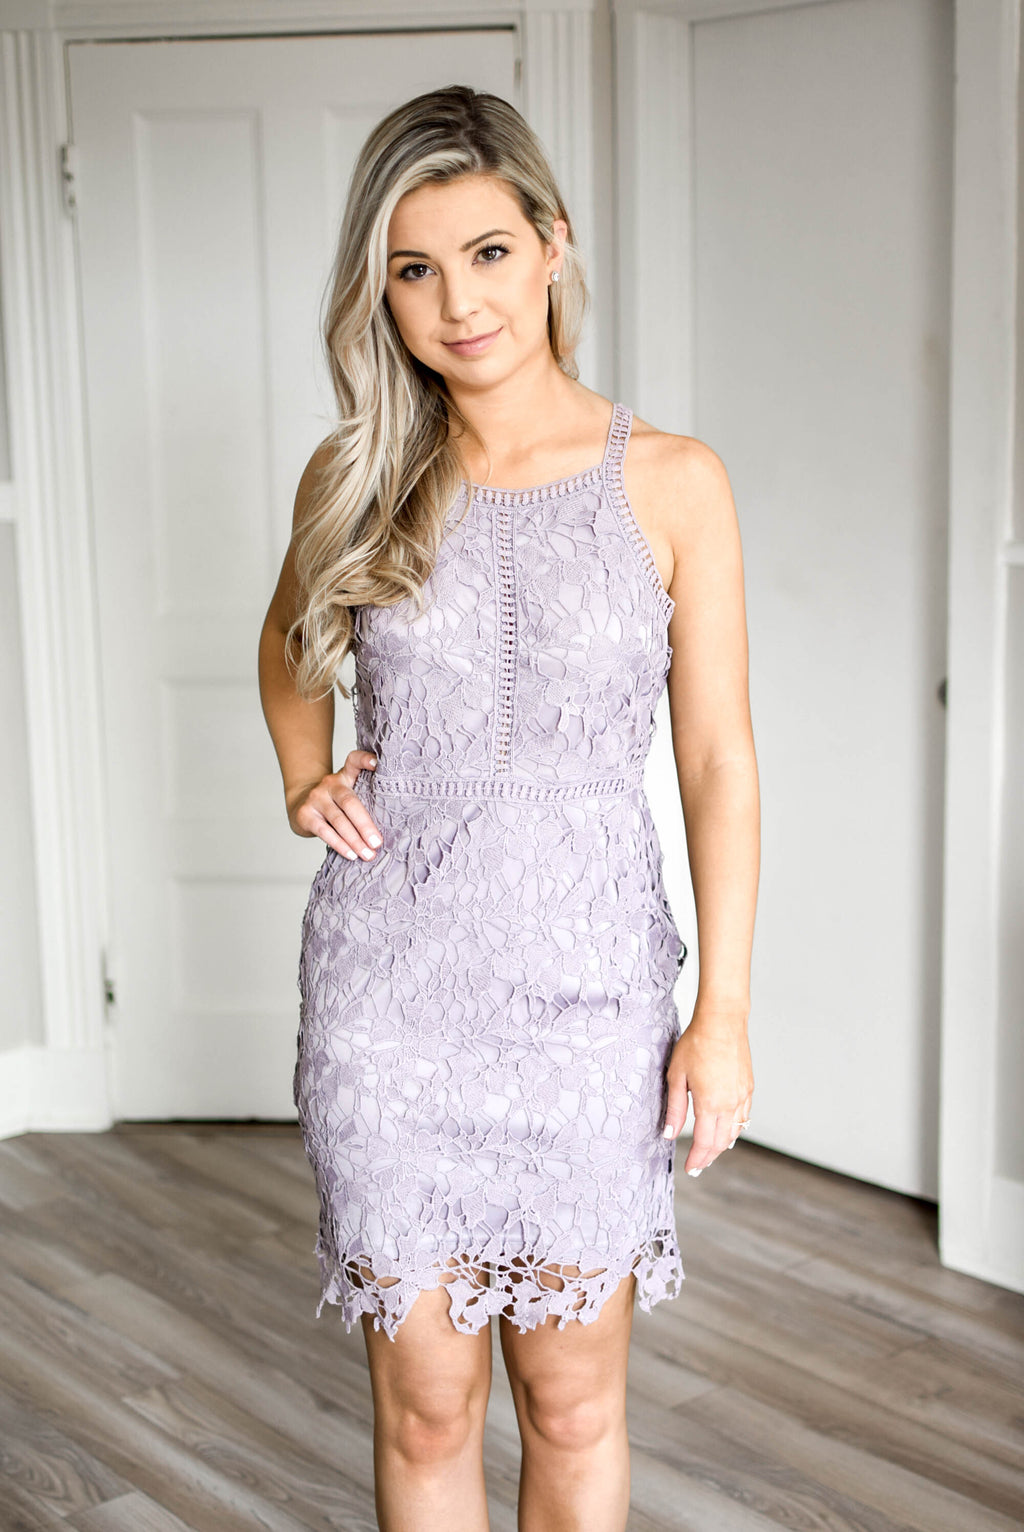 Lavender Lace Bodycon Dress - Mint Pop Shop